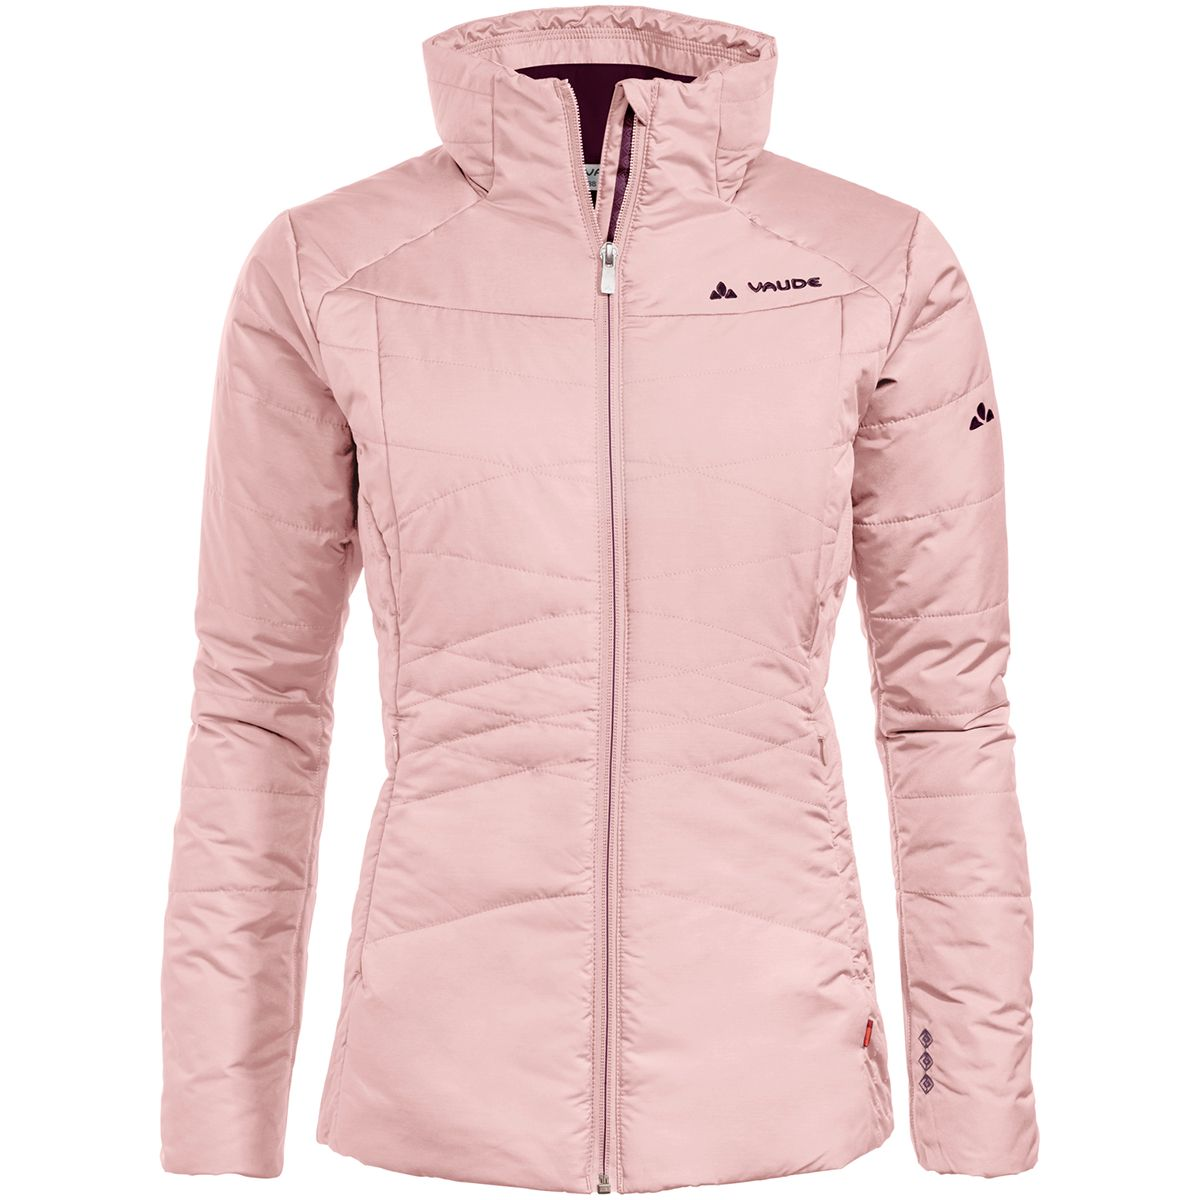 Vaude Damen Skomer Winter Jacke (Größe 3XL, Pink) | Isolationsjacken > Damen